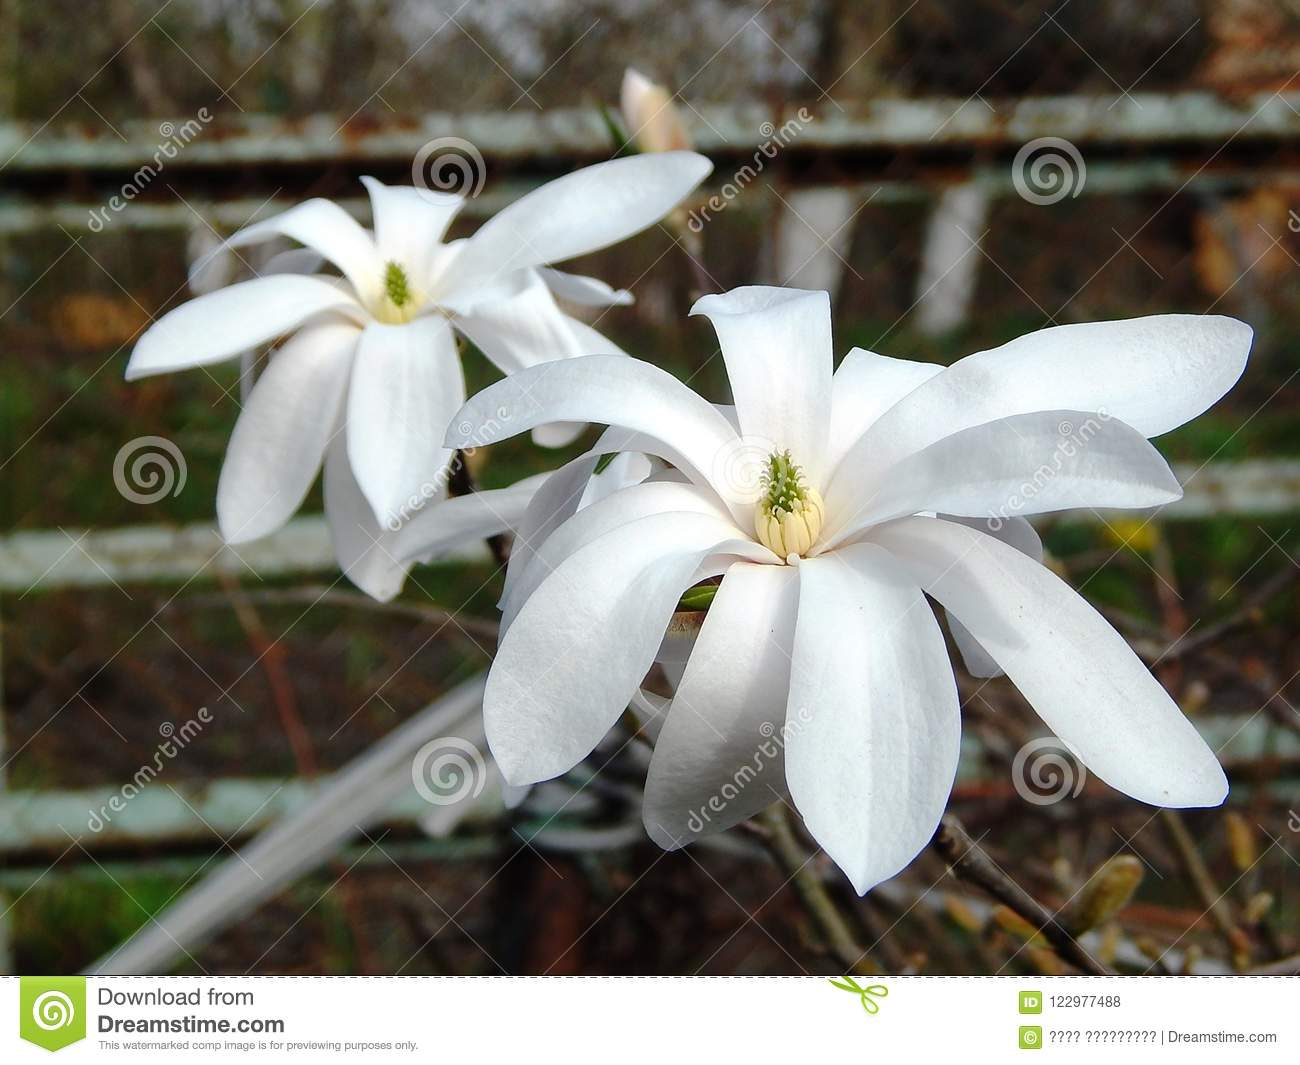 Beautiful Flowers Magnolia Plants With White Petals Stock Photo